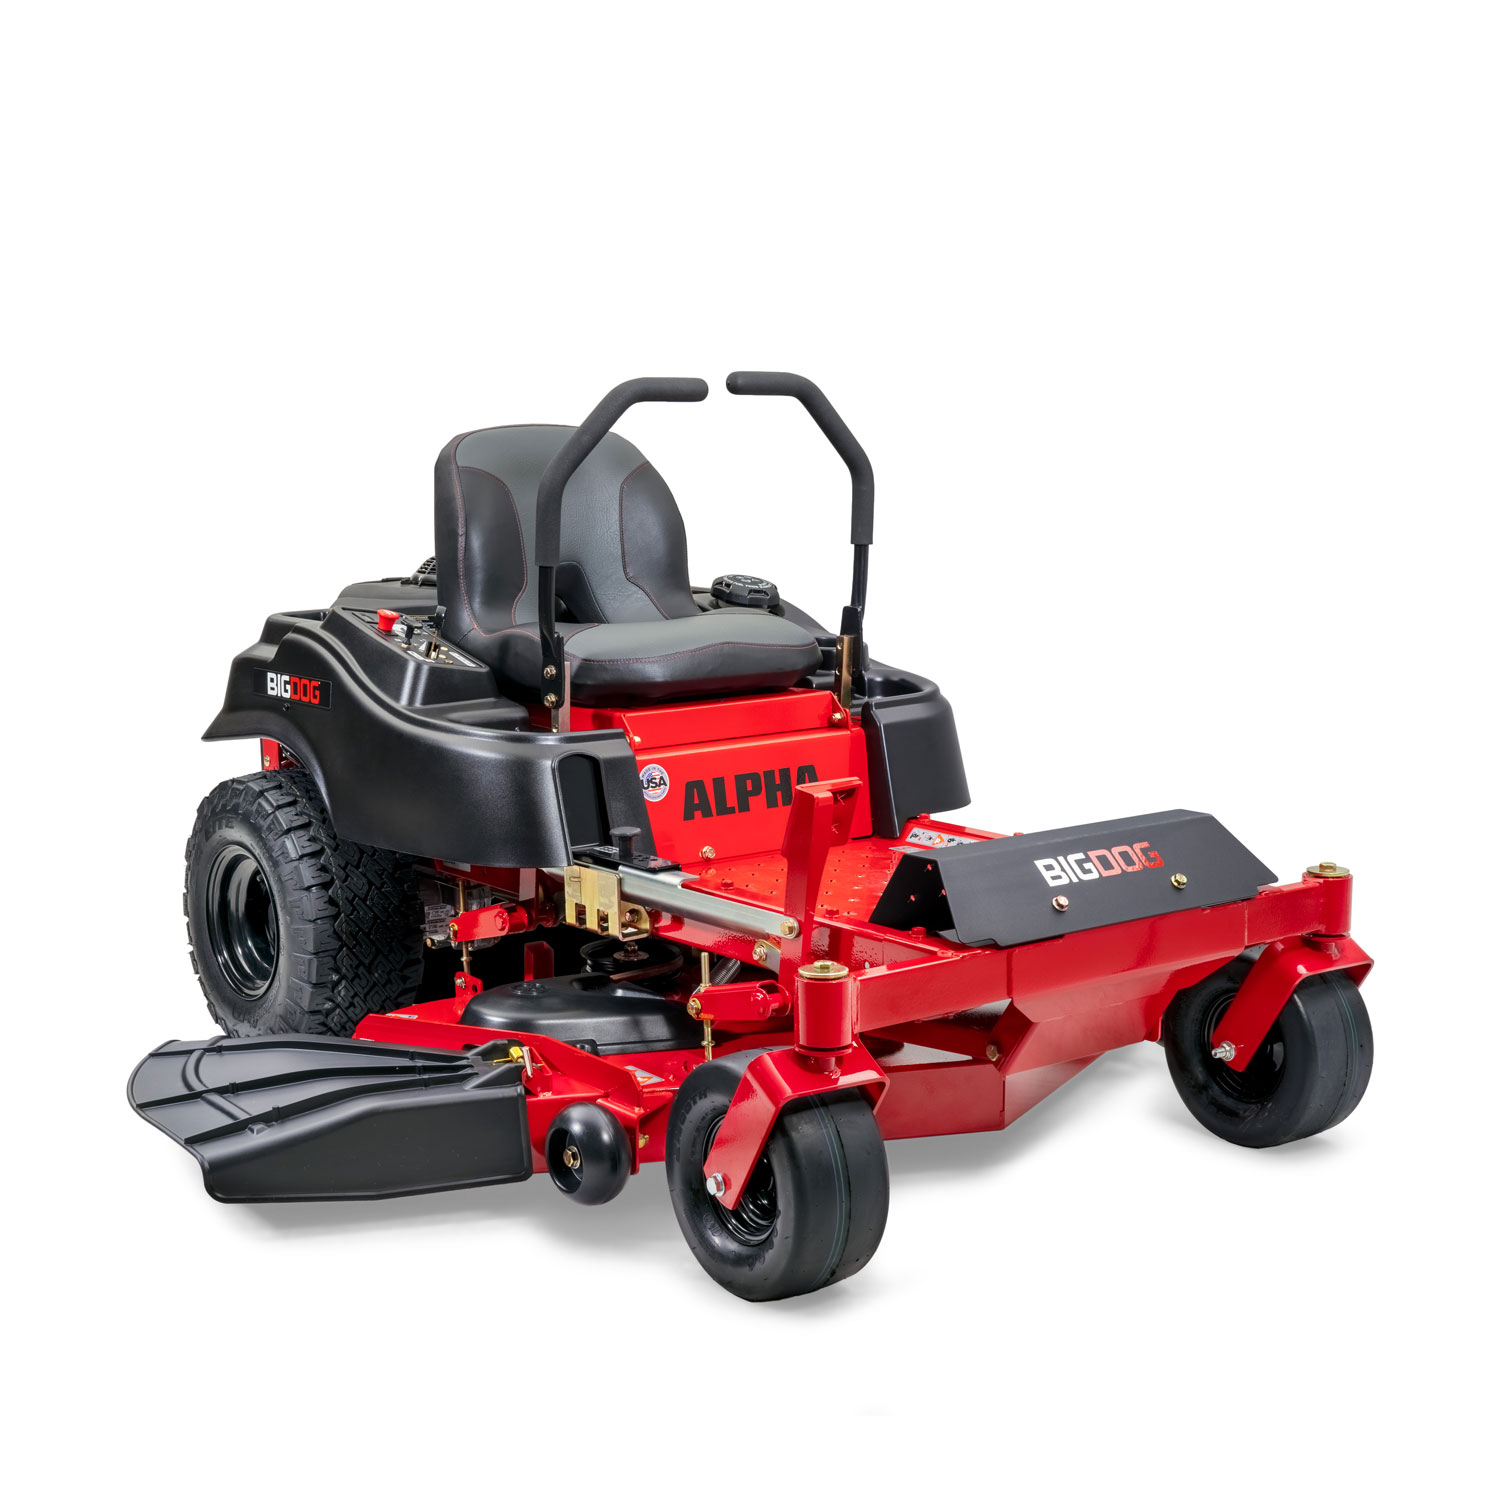 Image of the front three quarters of a red BigDog mower